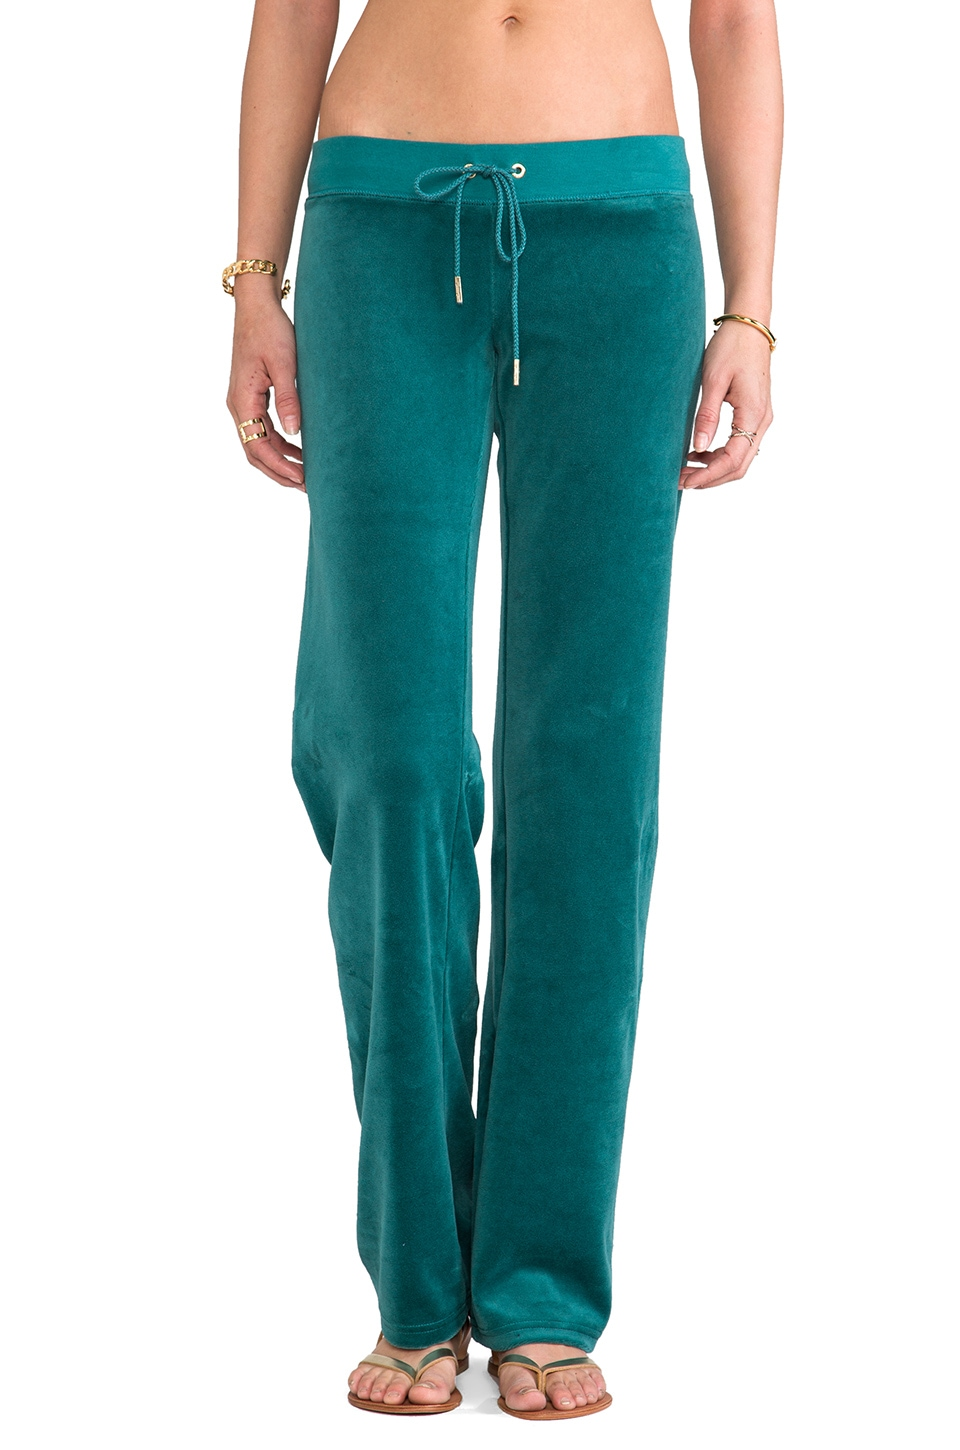 Juicy Couture Velour Bling Original Leg Pant in Wild Child